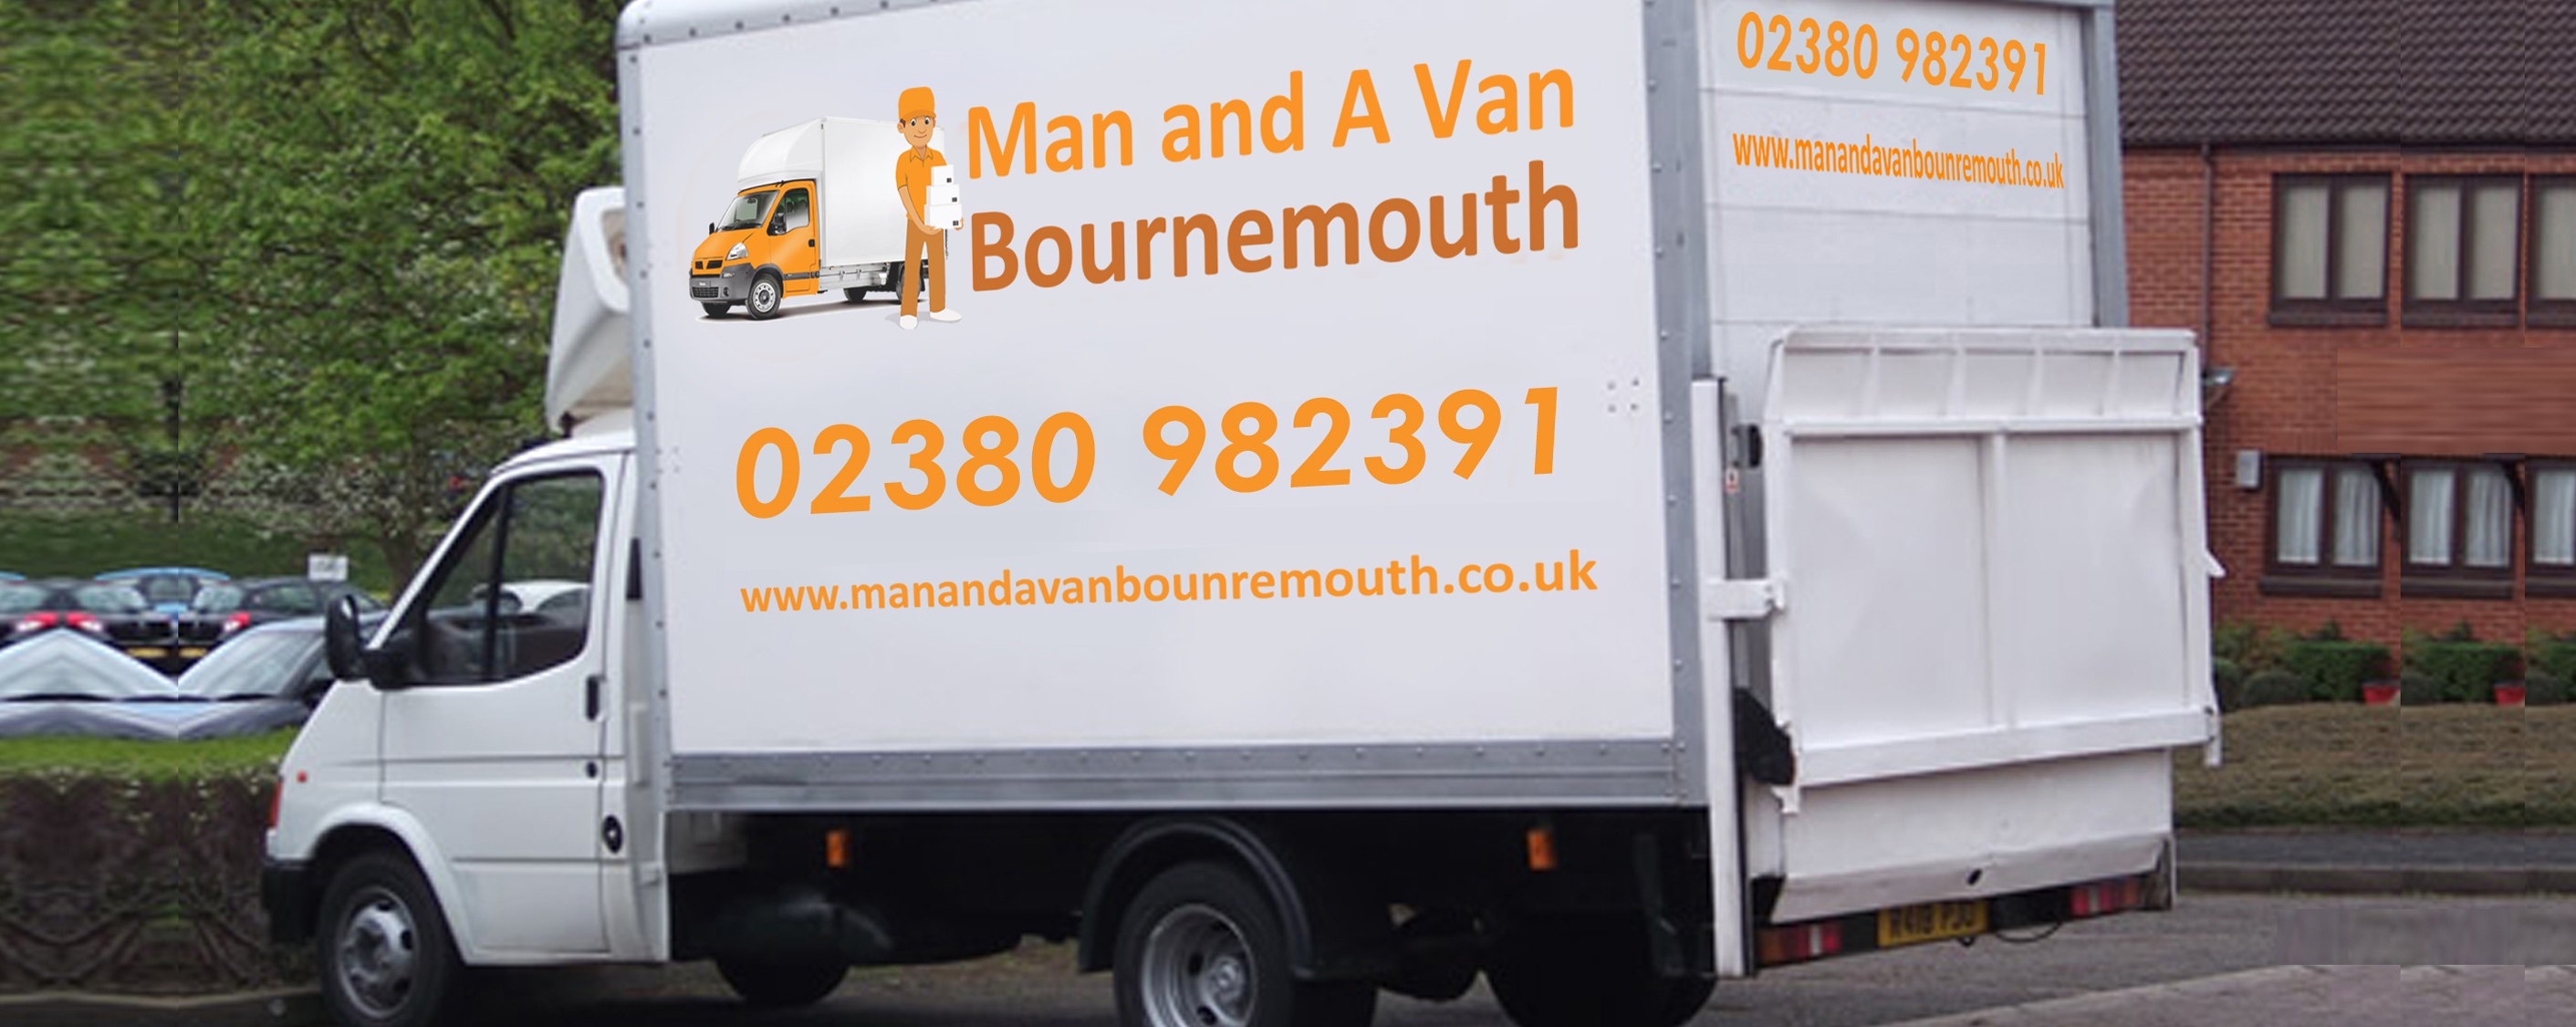 Man-and-Van-Bournemouth-Vans